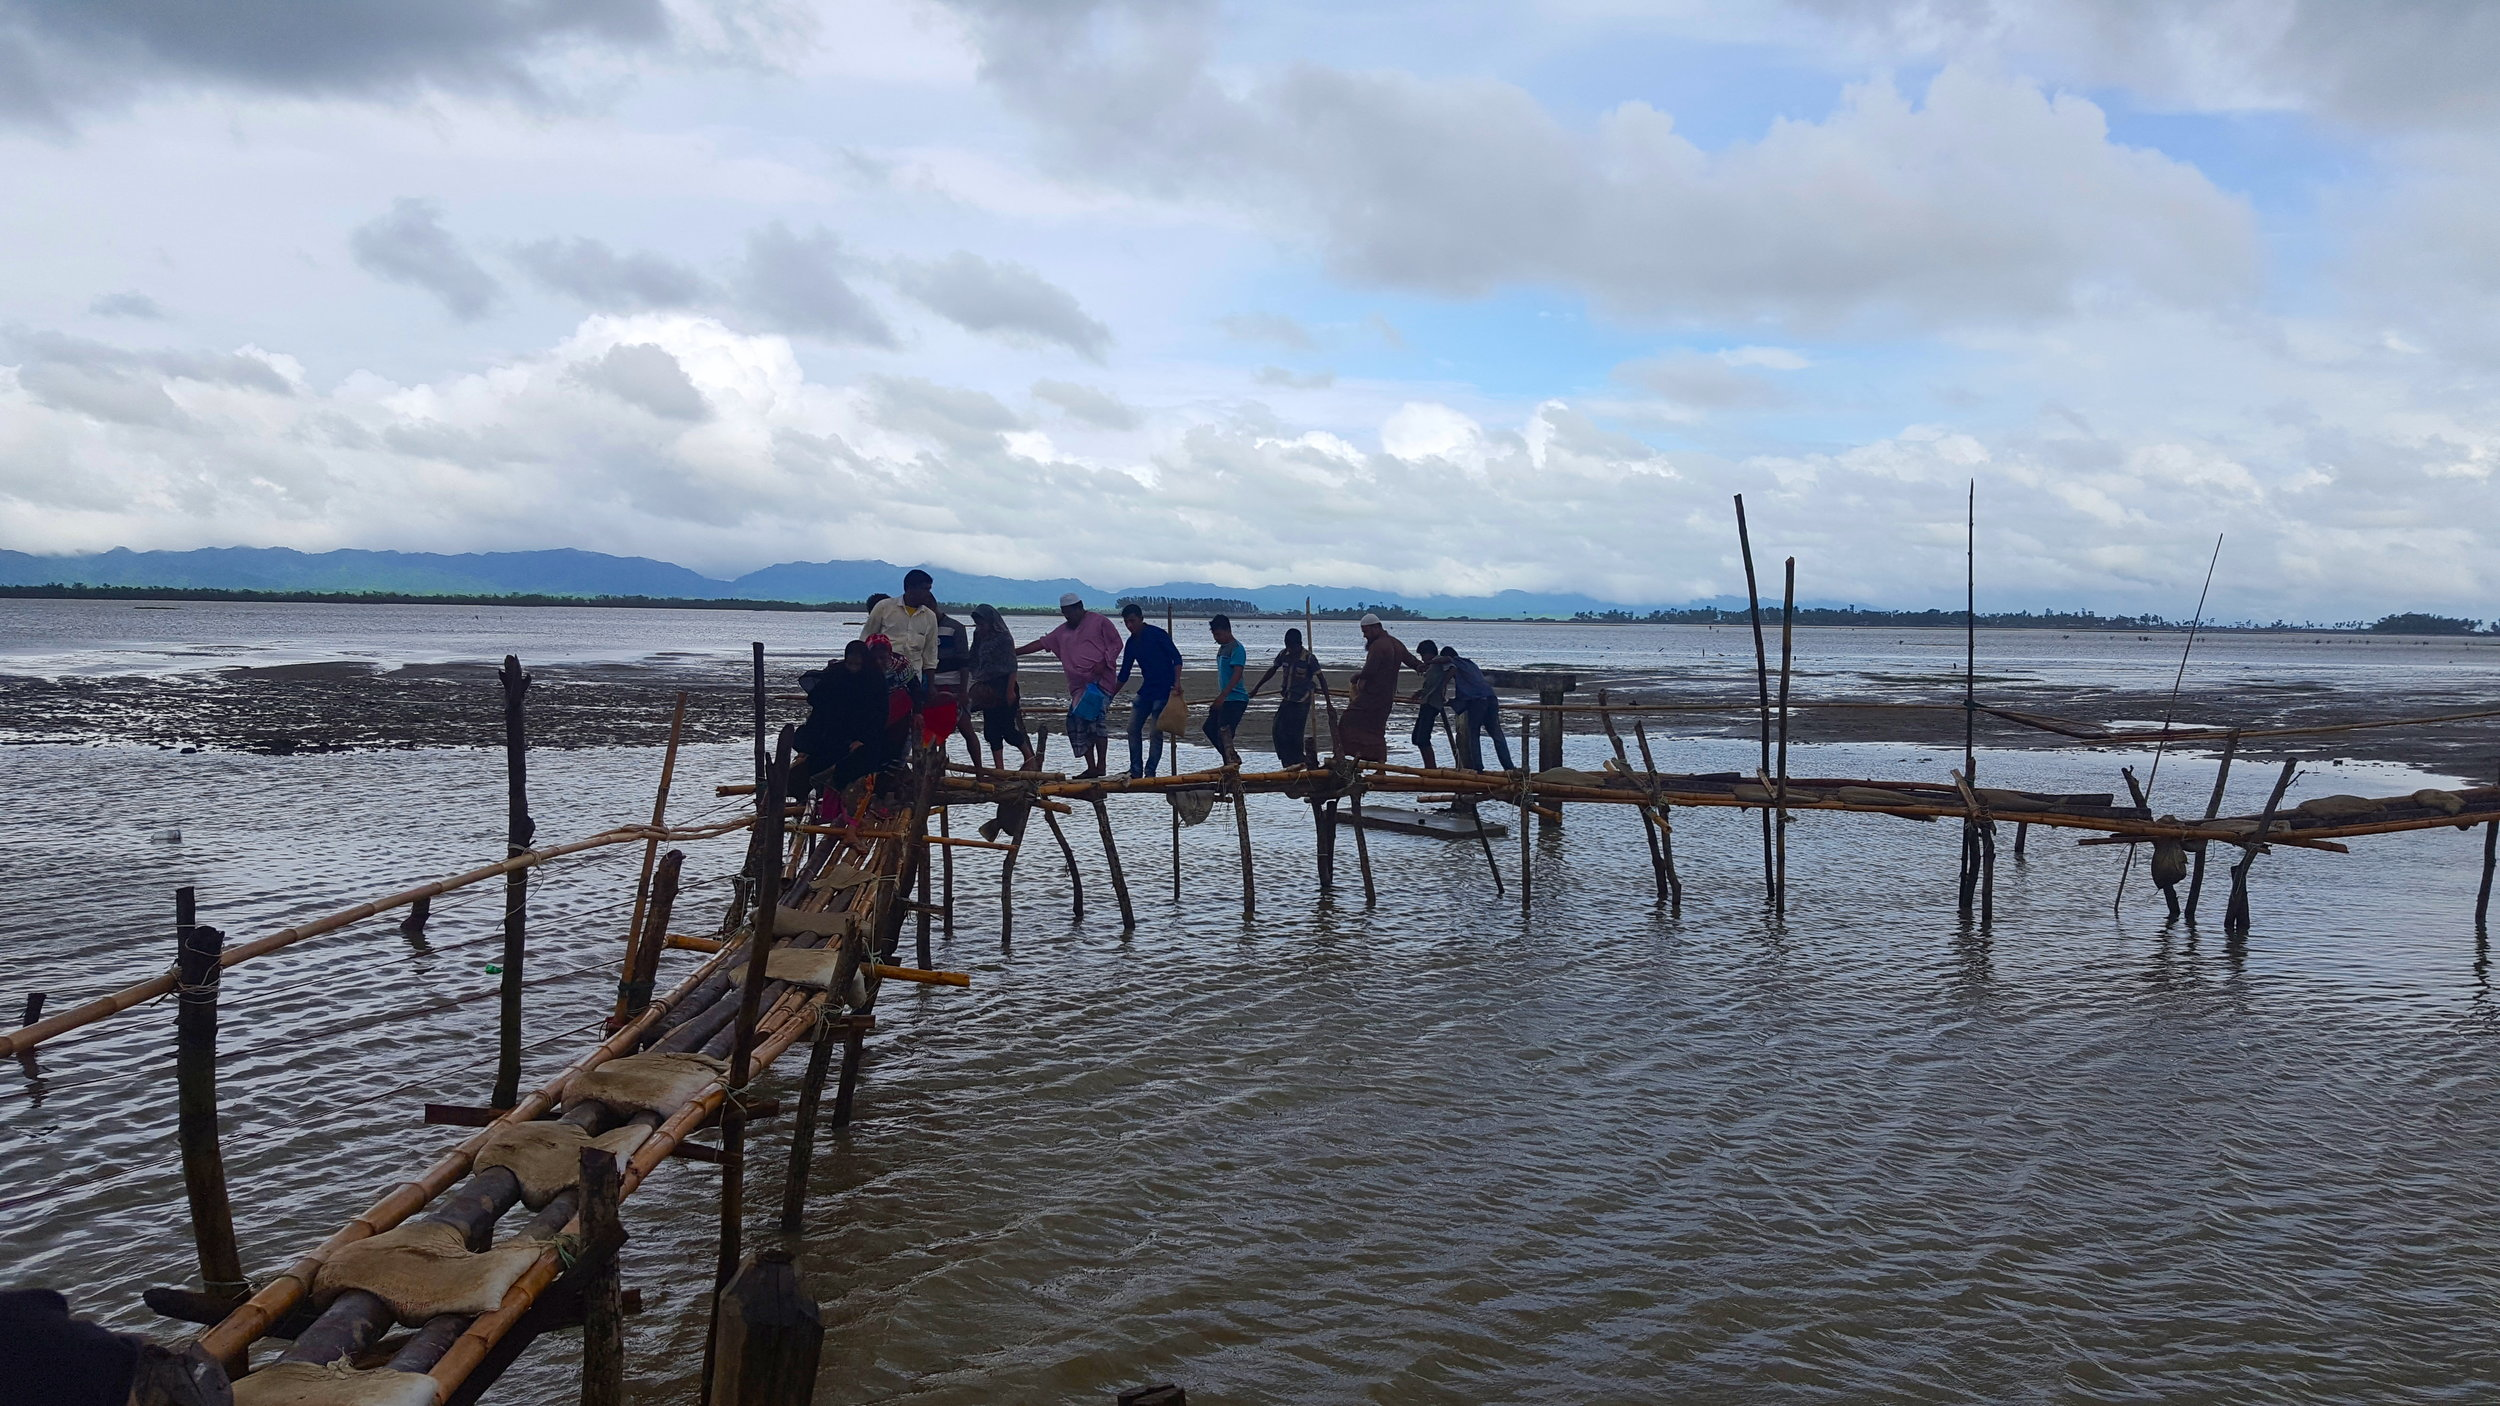 Hundreds of refugees have crossed into Bangladesh using this makeshift bamboo bridge built by Friendship, a Bangladeshi non-governmental organization. This precarious bridge has served as a replacement for the one that preceded it, which collapsed under heavy rains. The Myanmar border lies across the water.